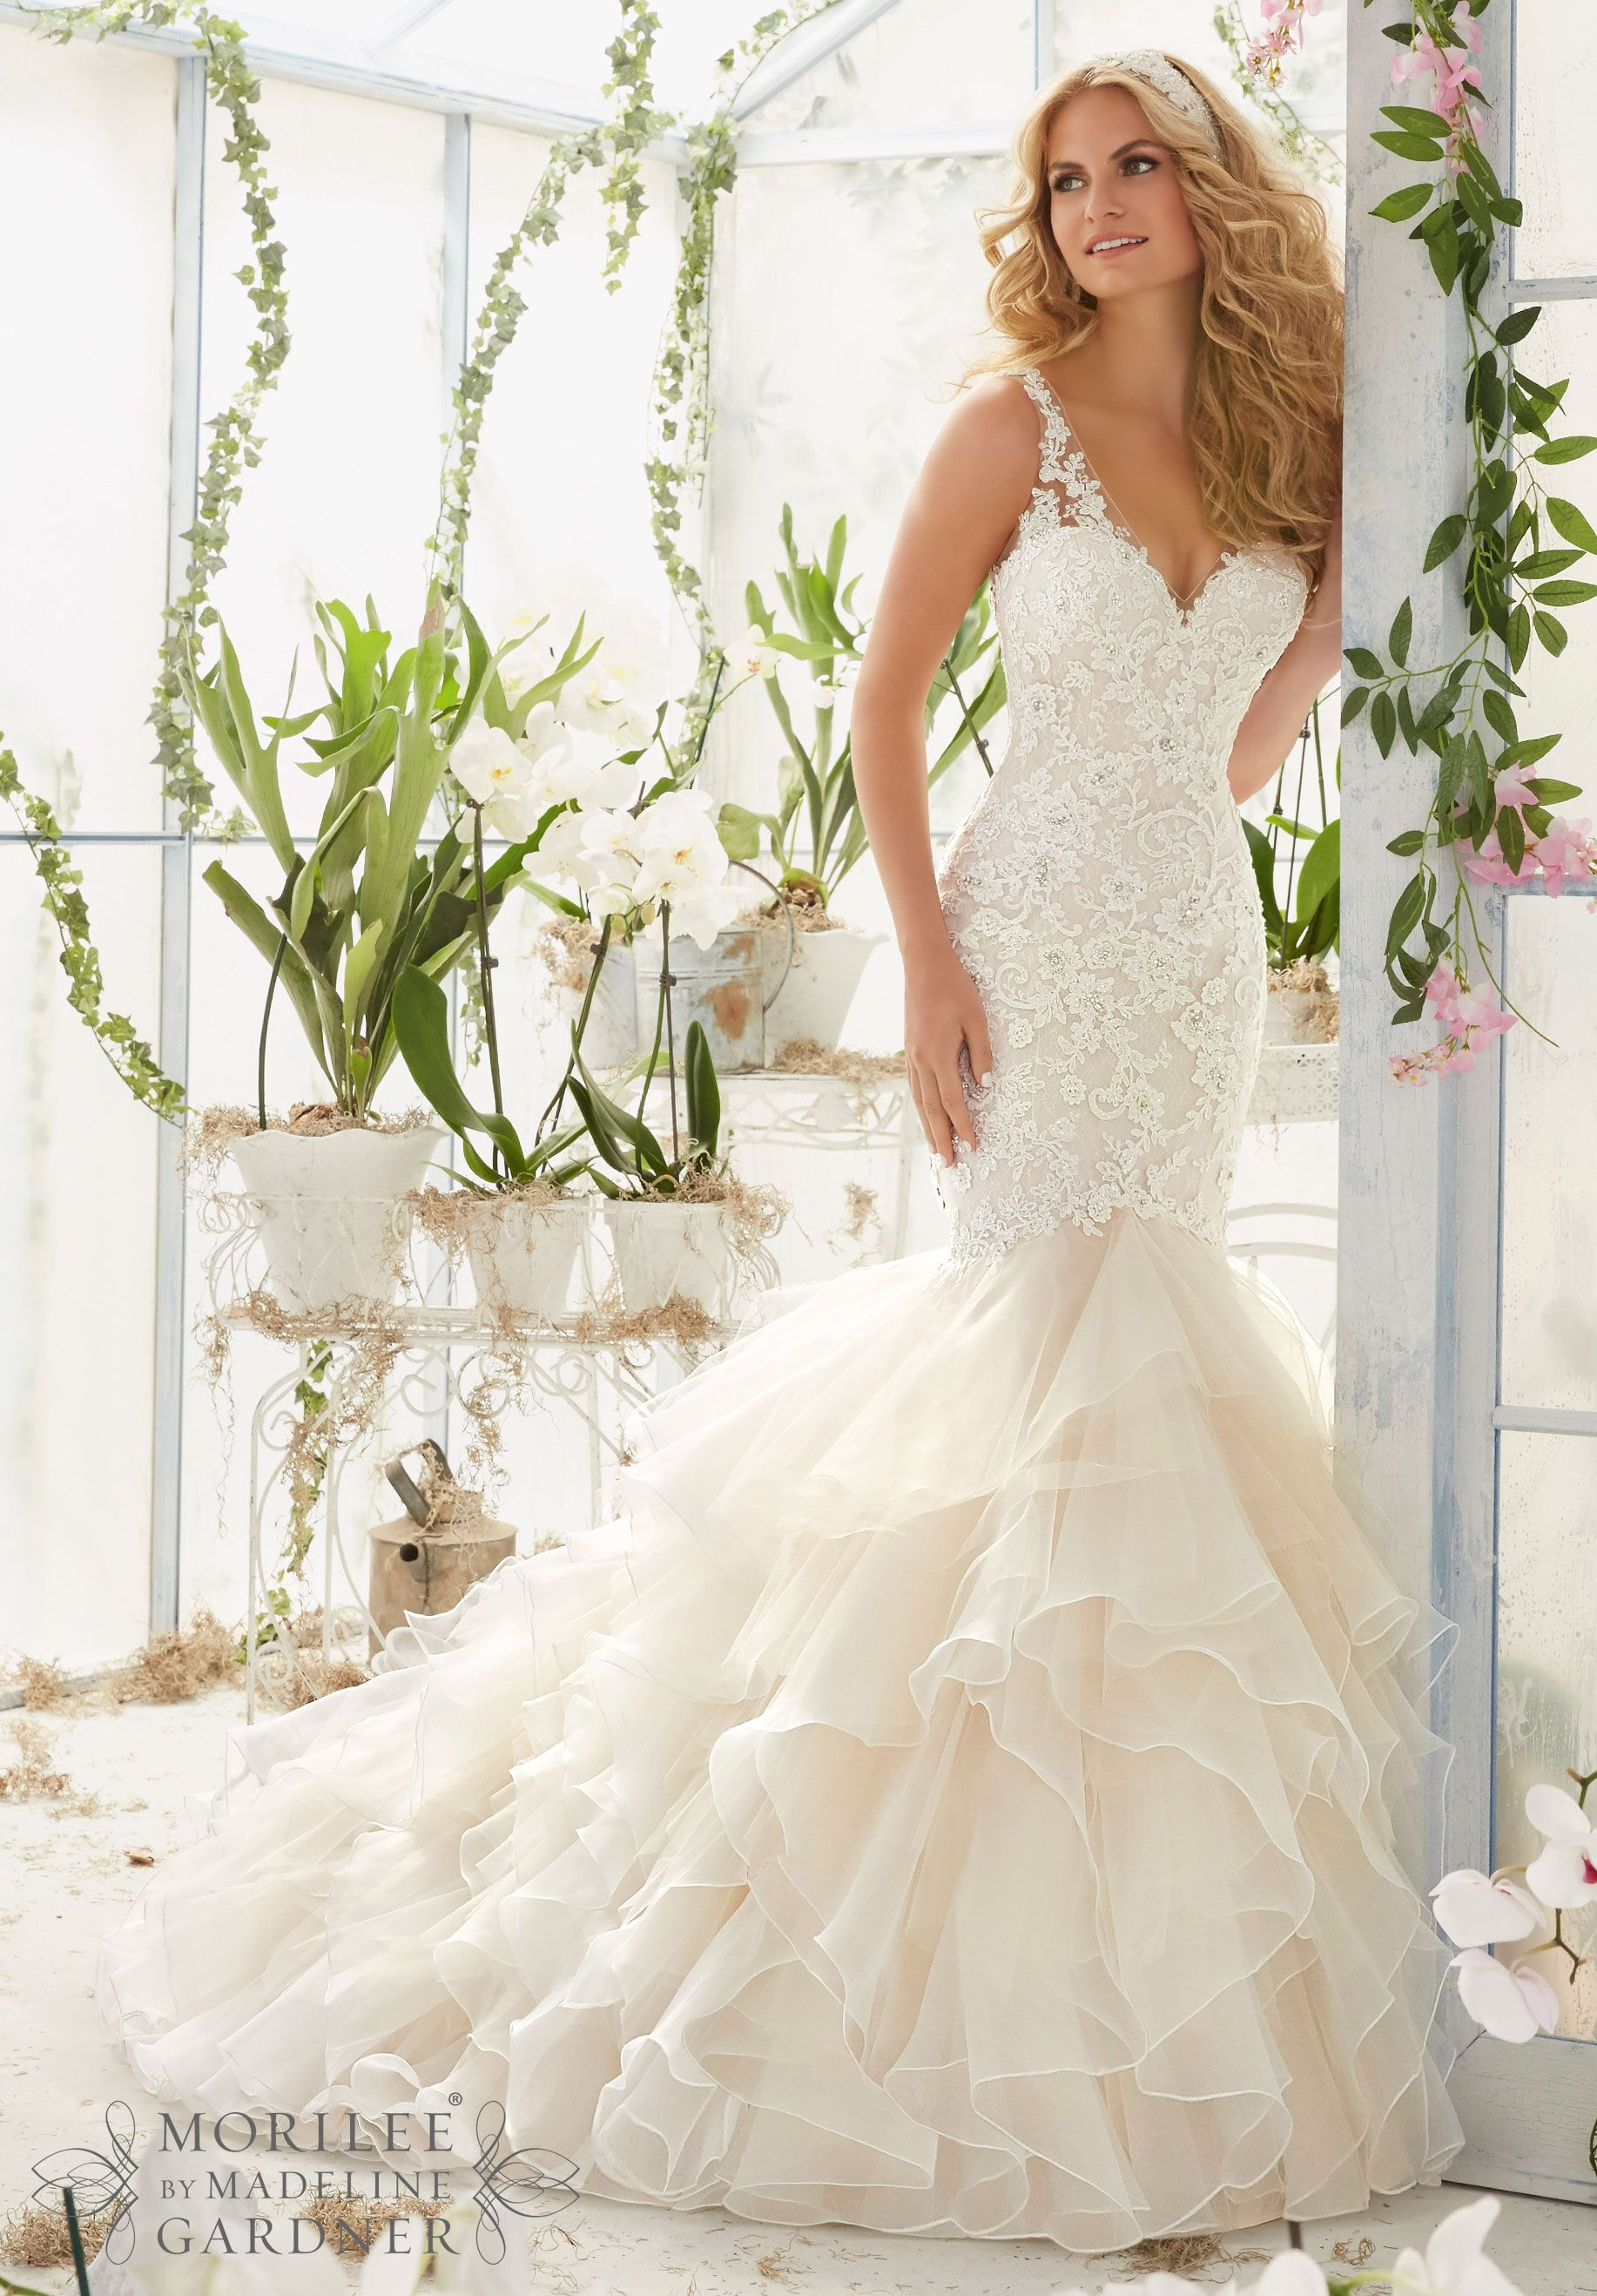 Wedding Dresses and Wedding Gowns by Morilee featuring Vintage Pearl and  Crystal Beading on Alencon Lace Appliques Over Chantilly Lace onto an  Organza and ... ad07400ee0